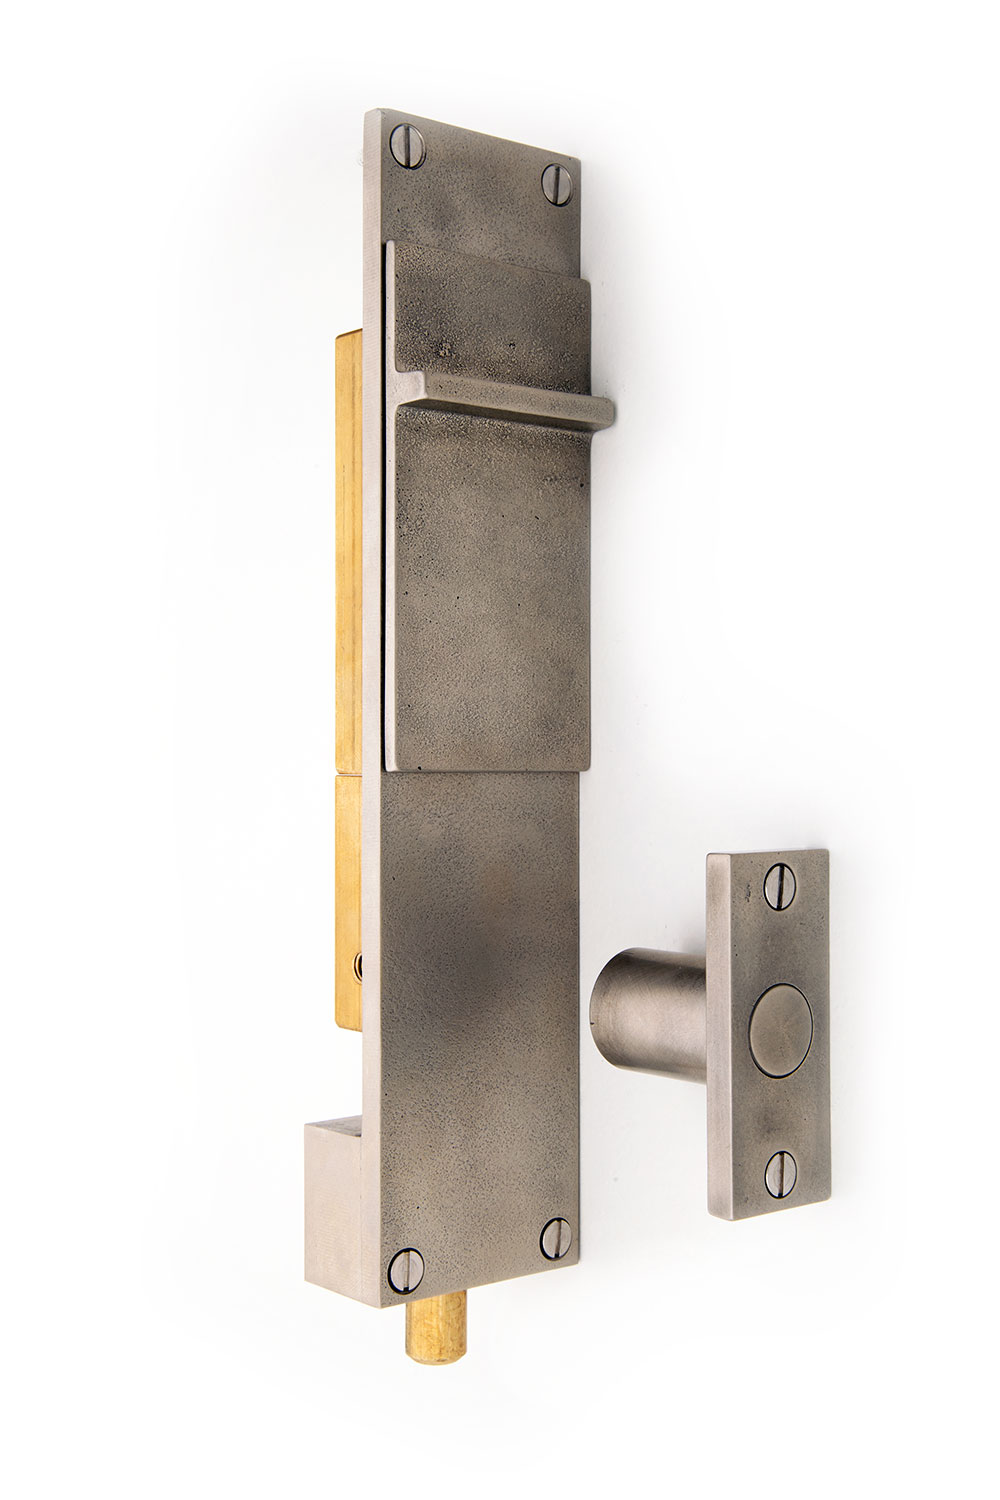 FSB-9. Flush Surface Bolt  sc 1 st  Sun Valley Bronze & Flush Door Bolts | Sun Valley Bronze